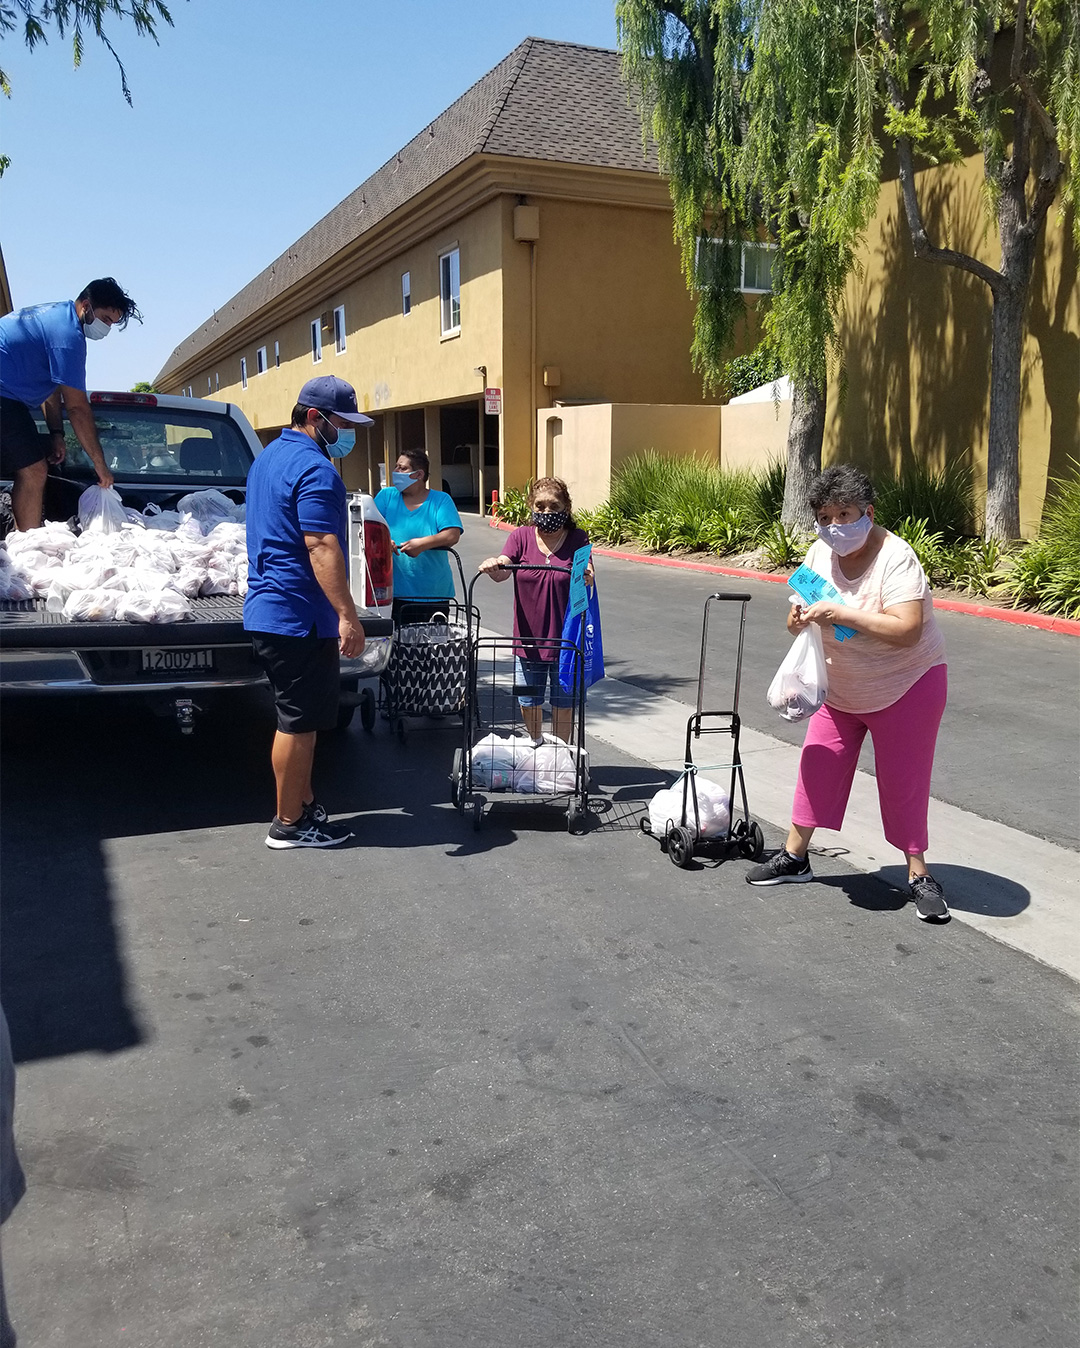 Residents Showing Their Food Bags